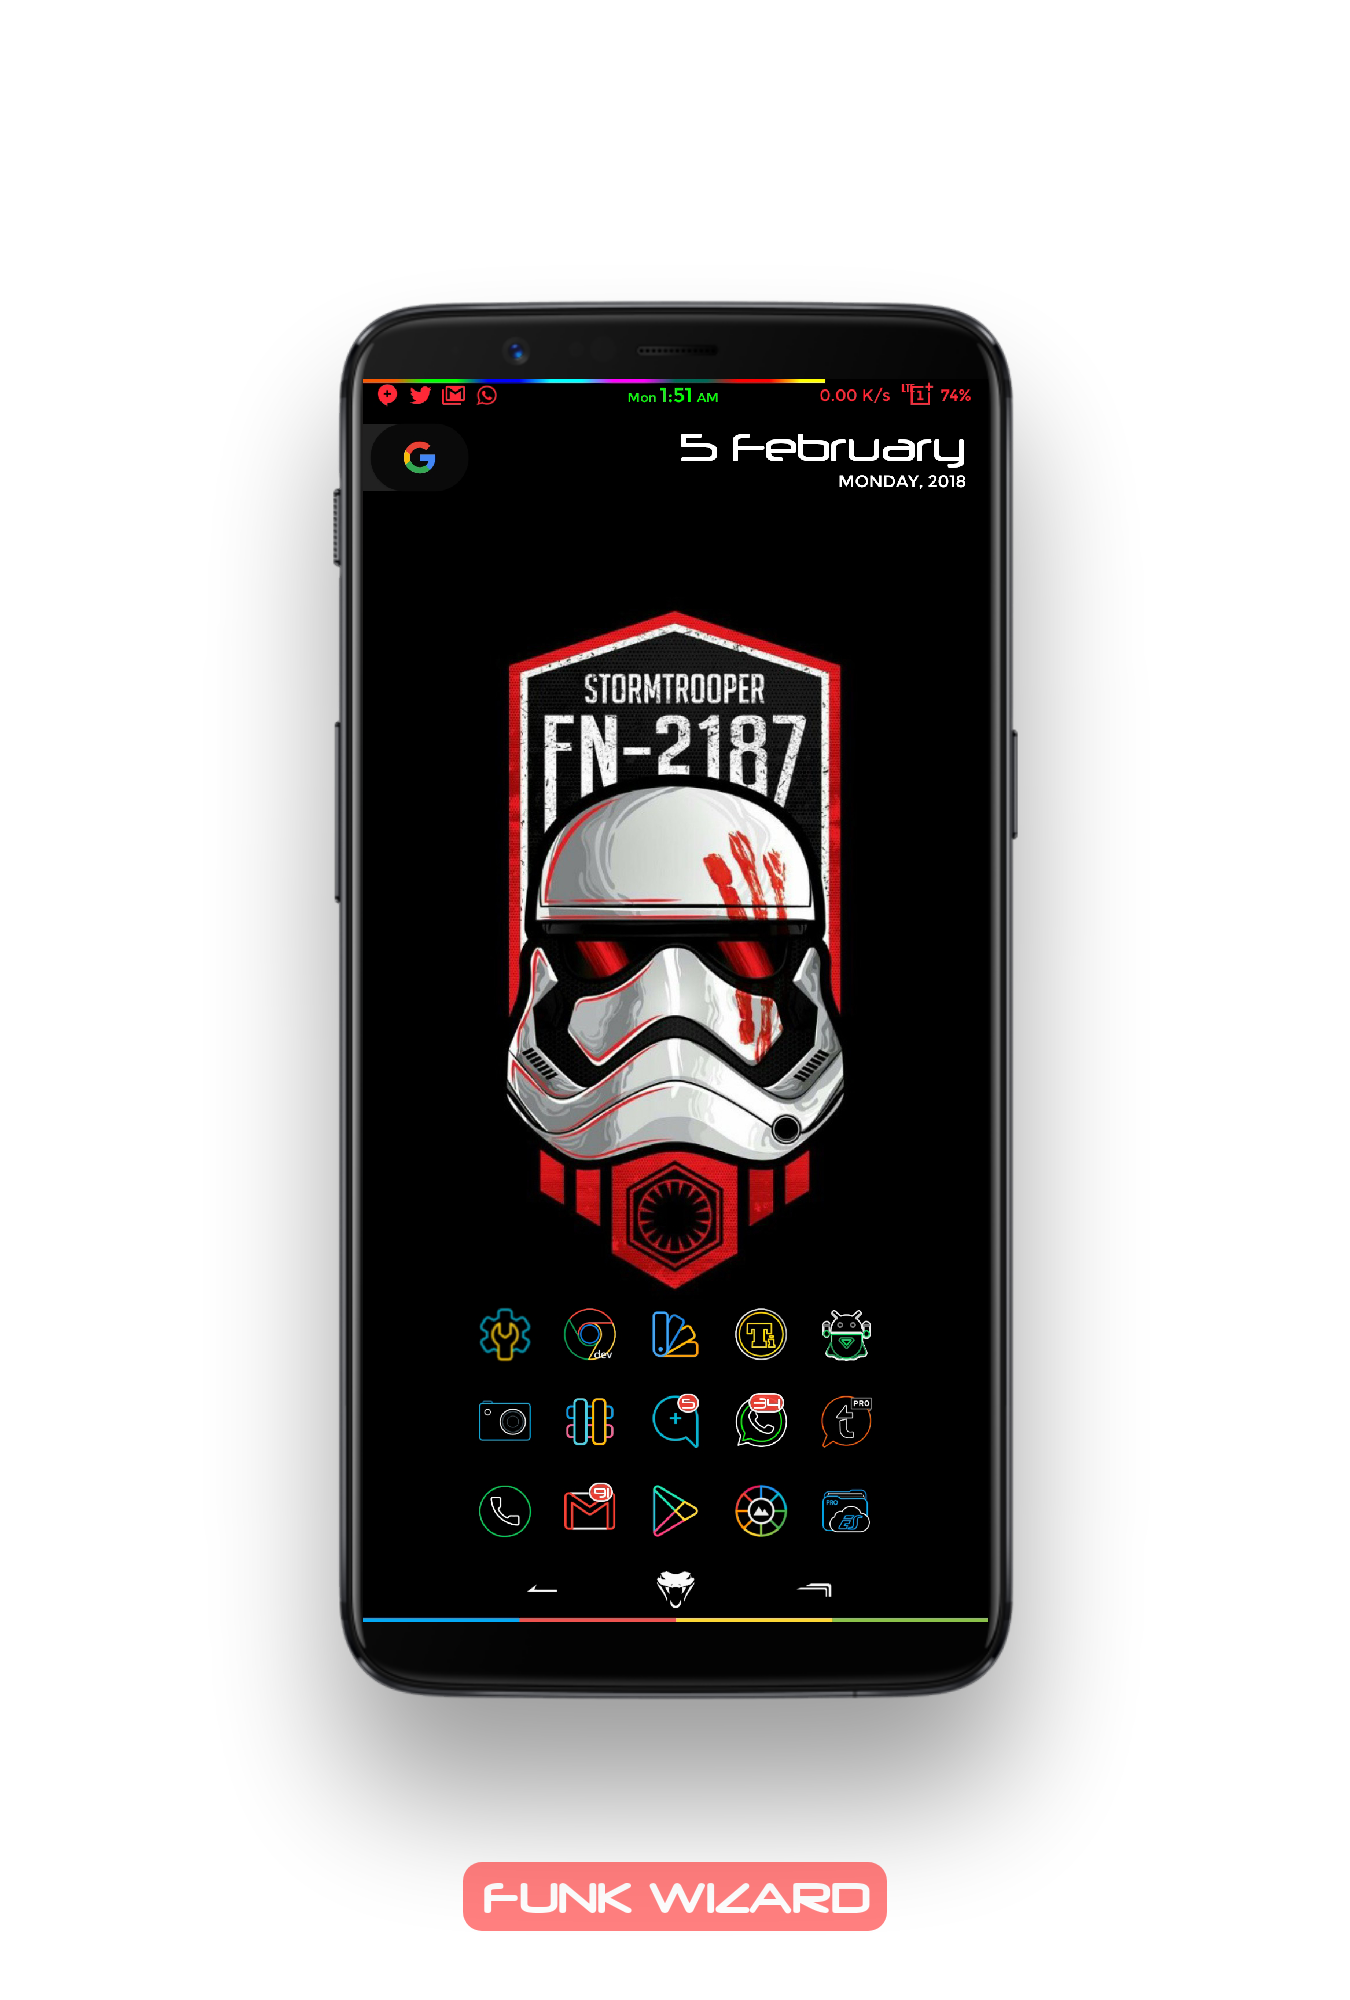 OnePlus 5T - Share Your Home Screen Thread !! - OnePlus